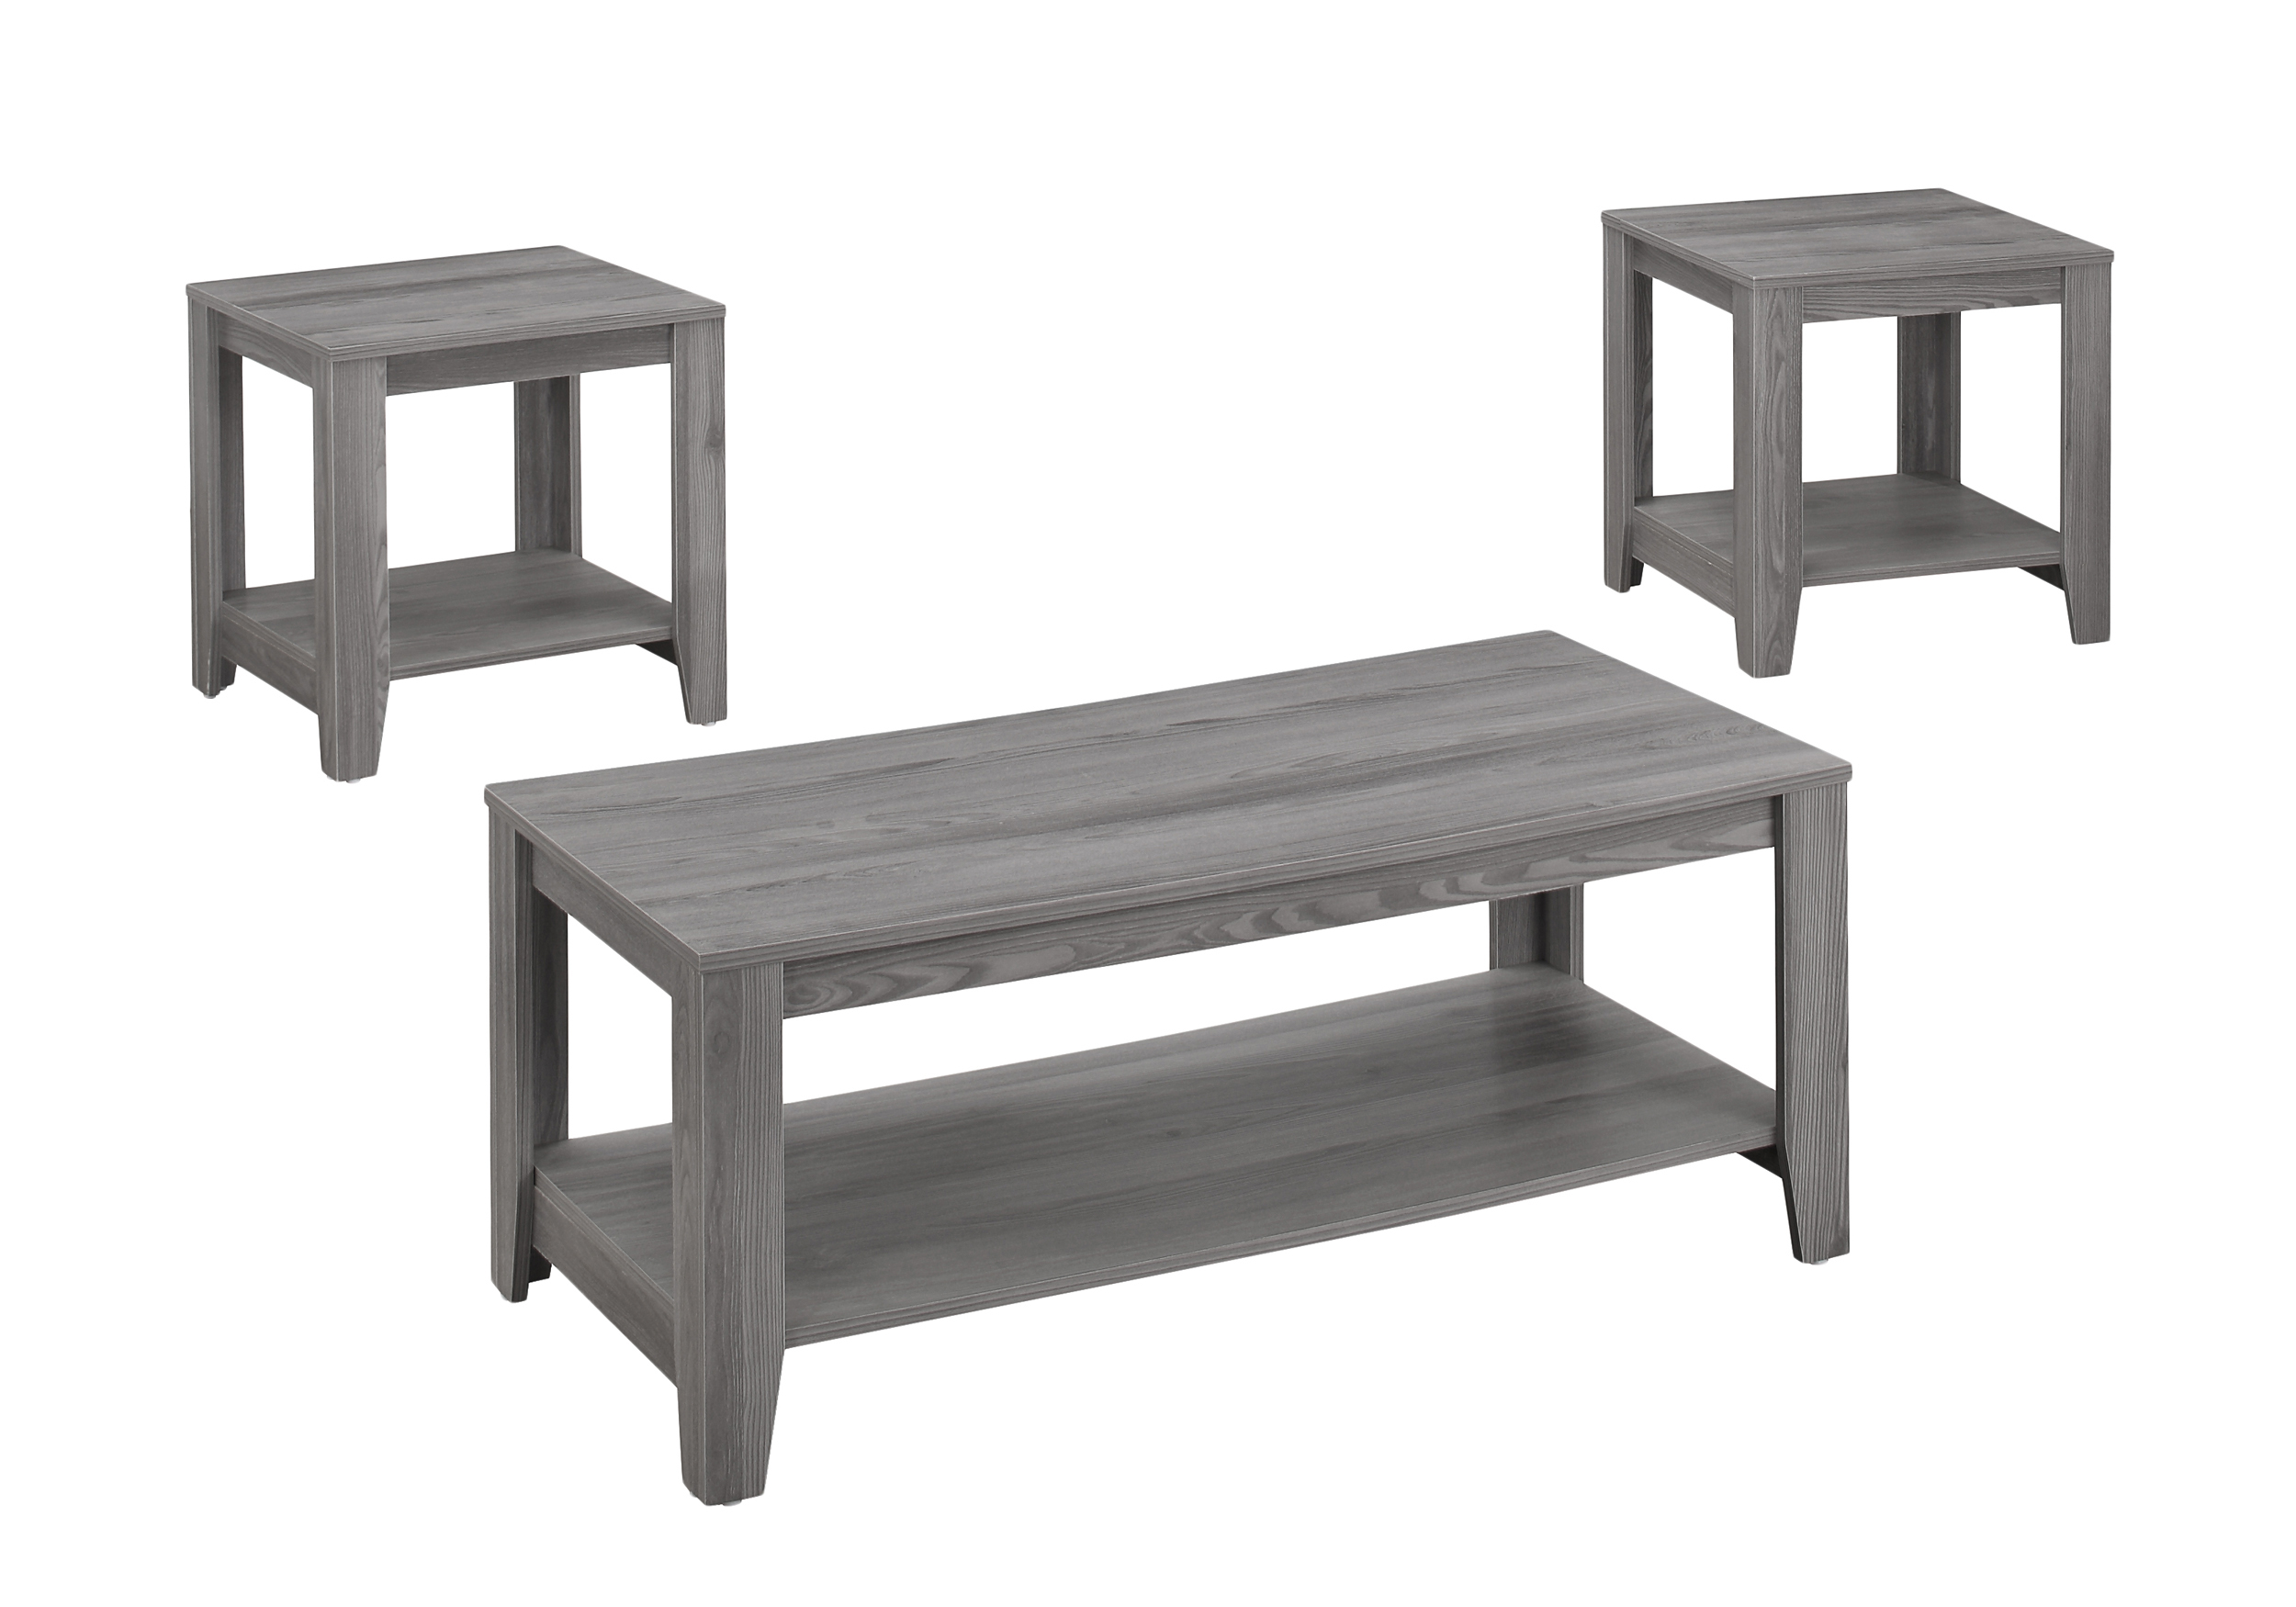 Monarch Specialties 3-Piece Coffee Table Set With Shelves, Rectangle, Gray Sonoma Oak